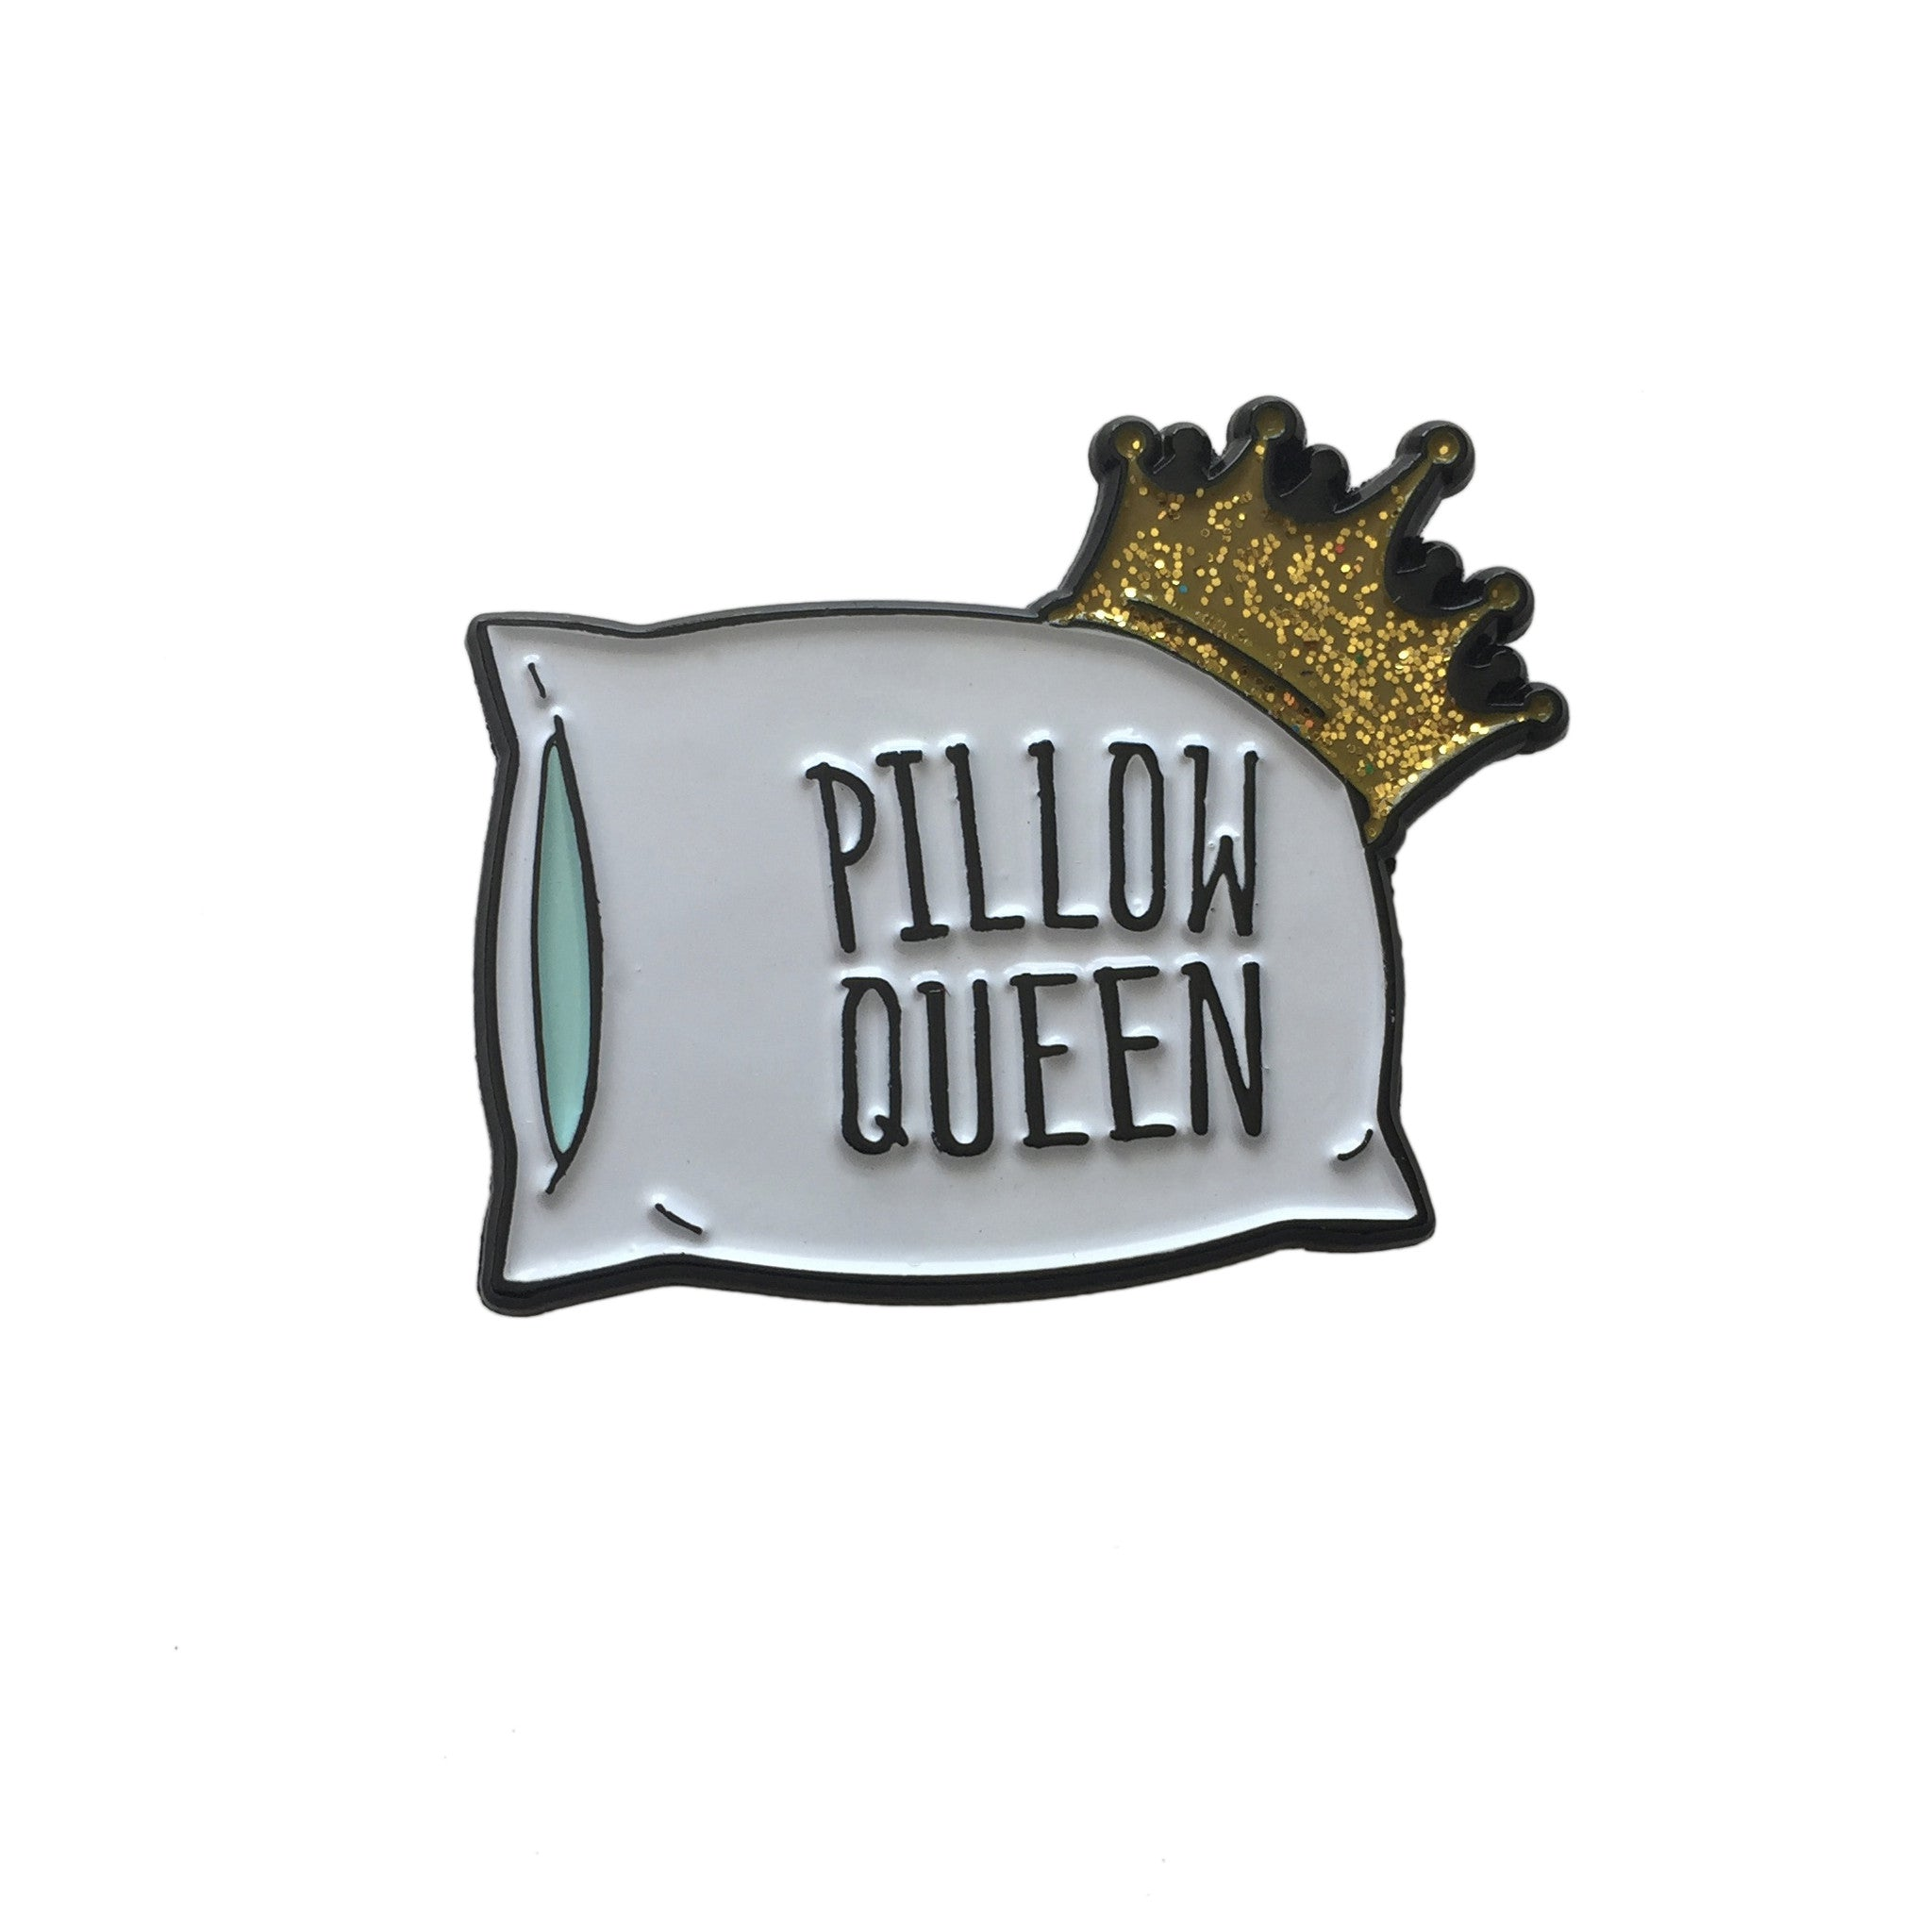 SECONDS - Pillow Queen Enamel Pin